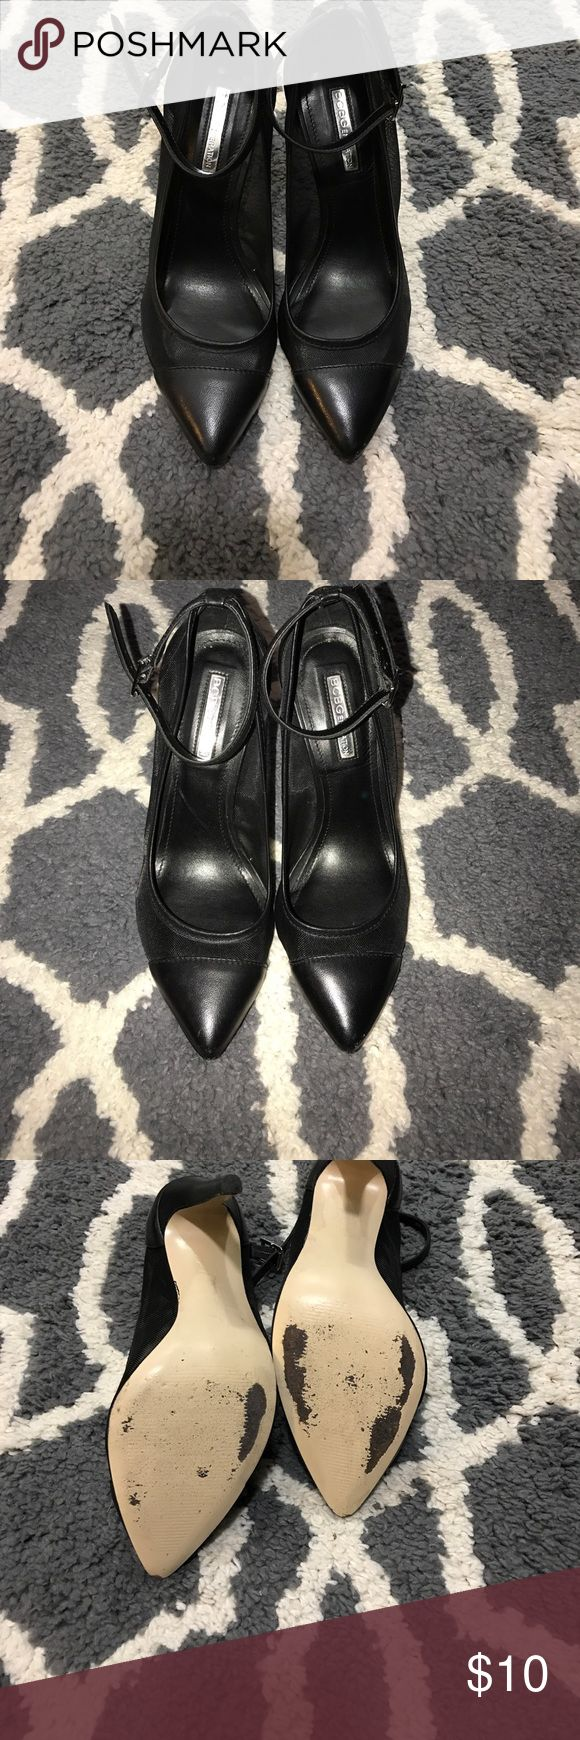 """BCBGeneration black mesh heels USED. BCBGeneration black mesh heels USED. 4"""" heel. These heels are preloved but still in good condition.  Left one has some scuffs and tiny mesh rip but like I said are still in good condition. Please look at pictures before purchasing. I consider all offers ❤️ BCBGeneration Shoes Heels"""